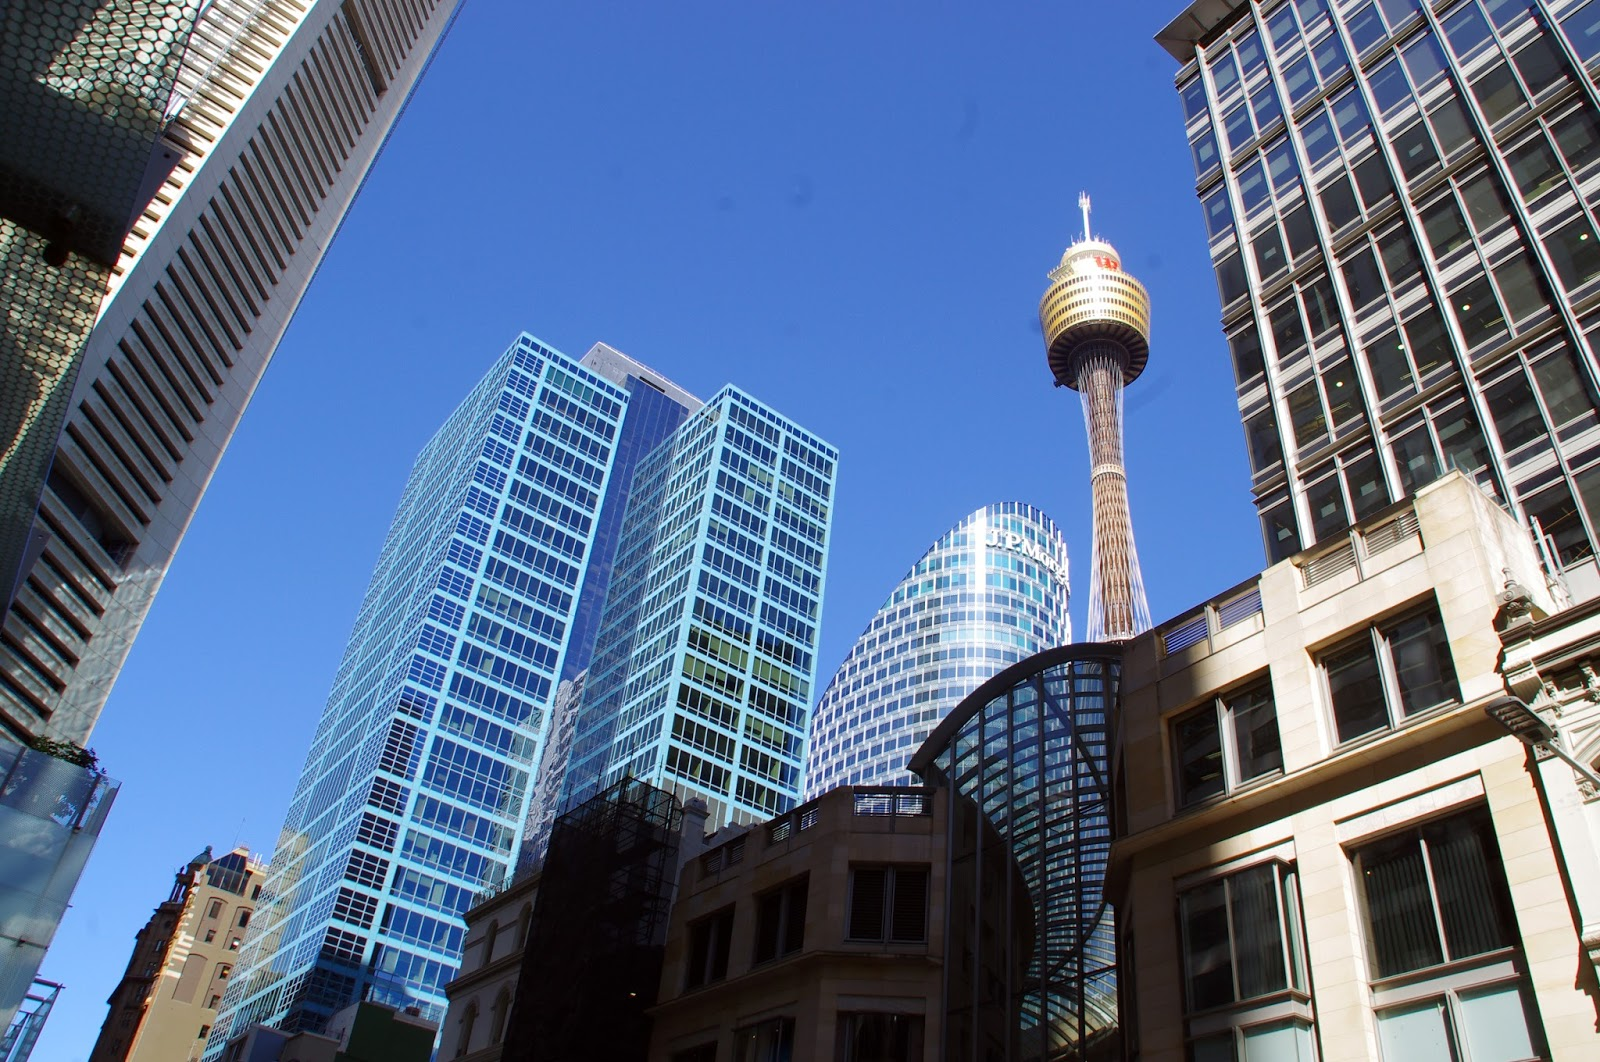 Sydney Skyline from the streets